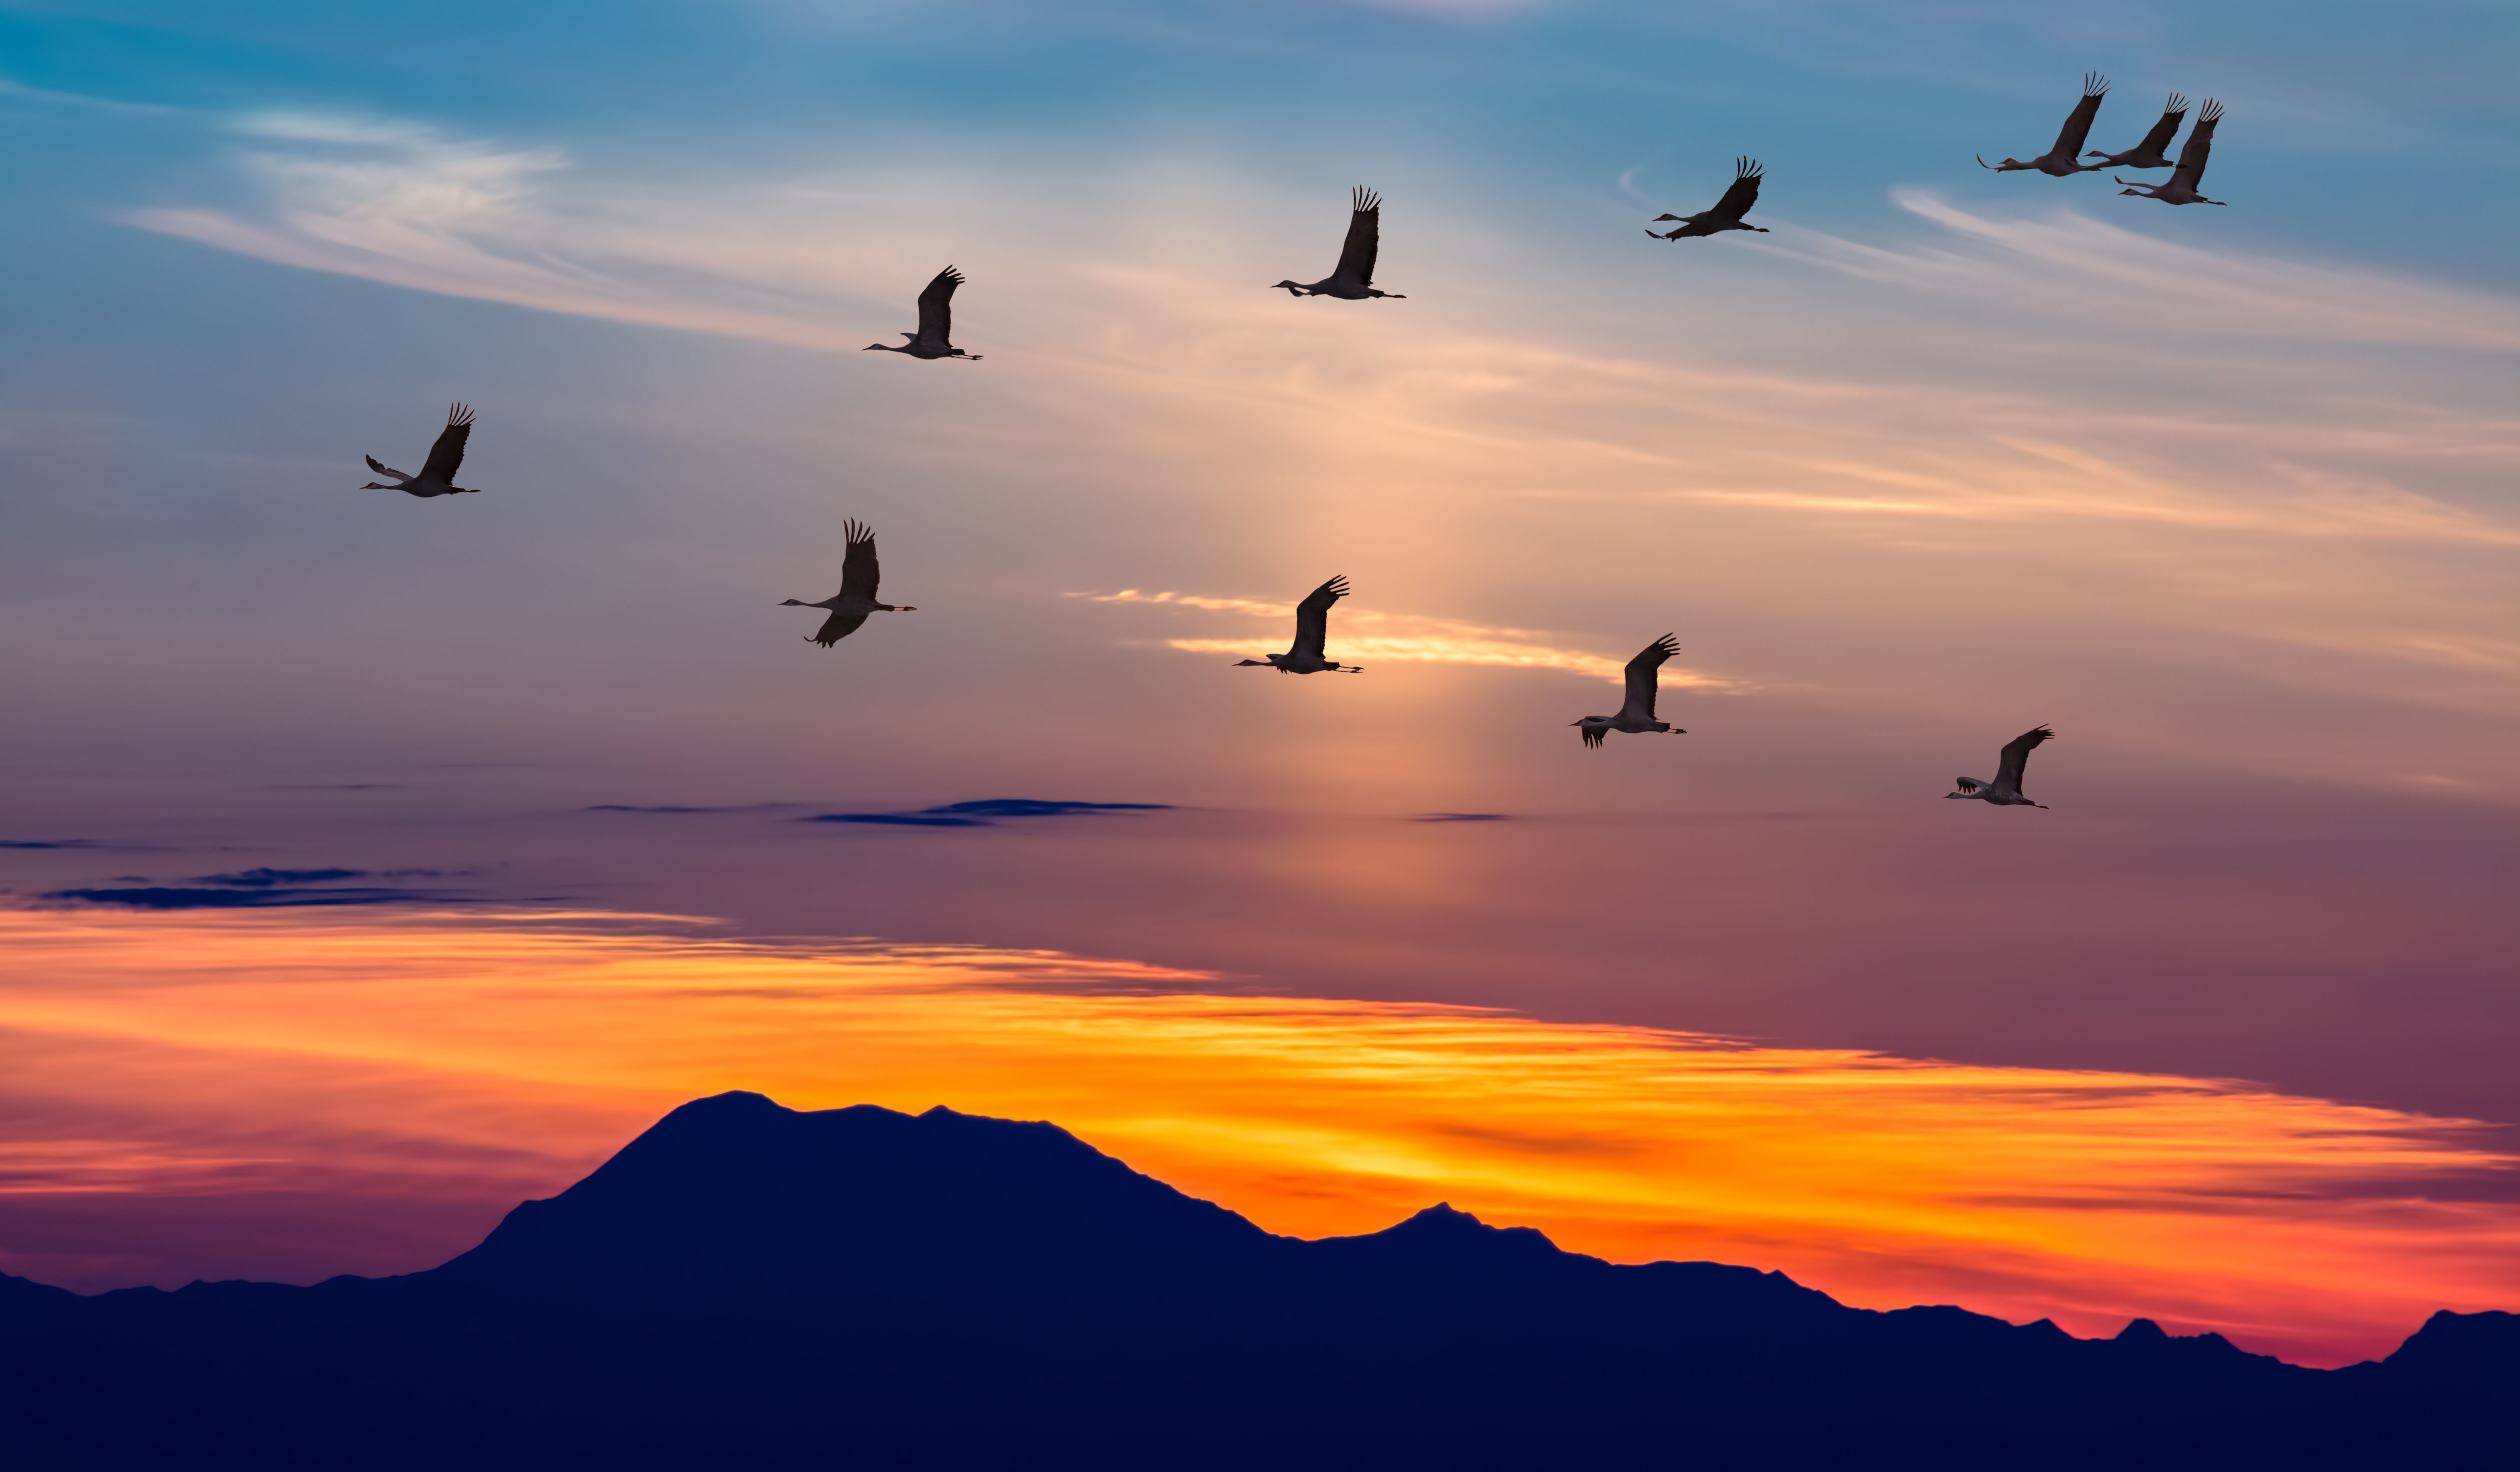 And Off They Go You Can Migrate South Too With The Help Of Barton S Limo Service We Make Getting To The Airport And Migratory Birds Birds Flying Why Do Birds